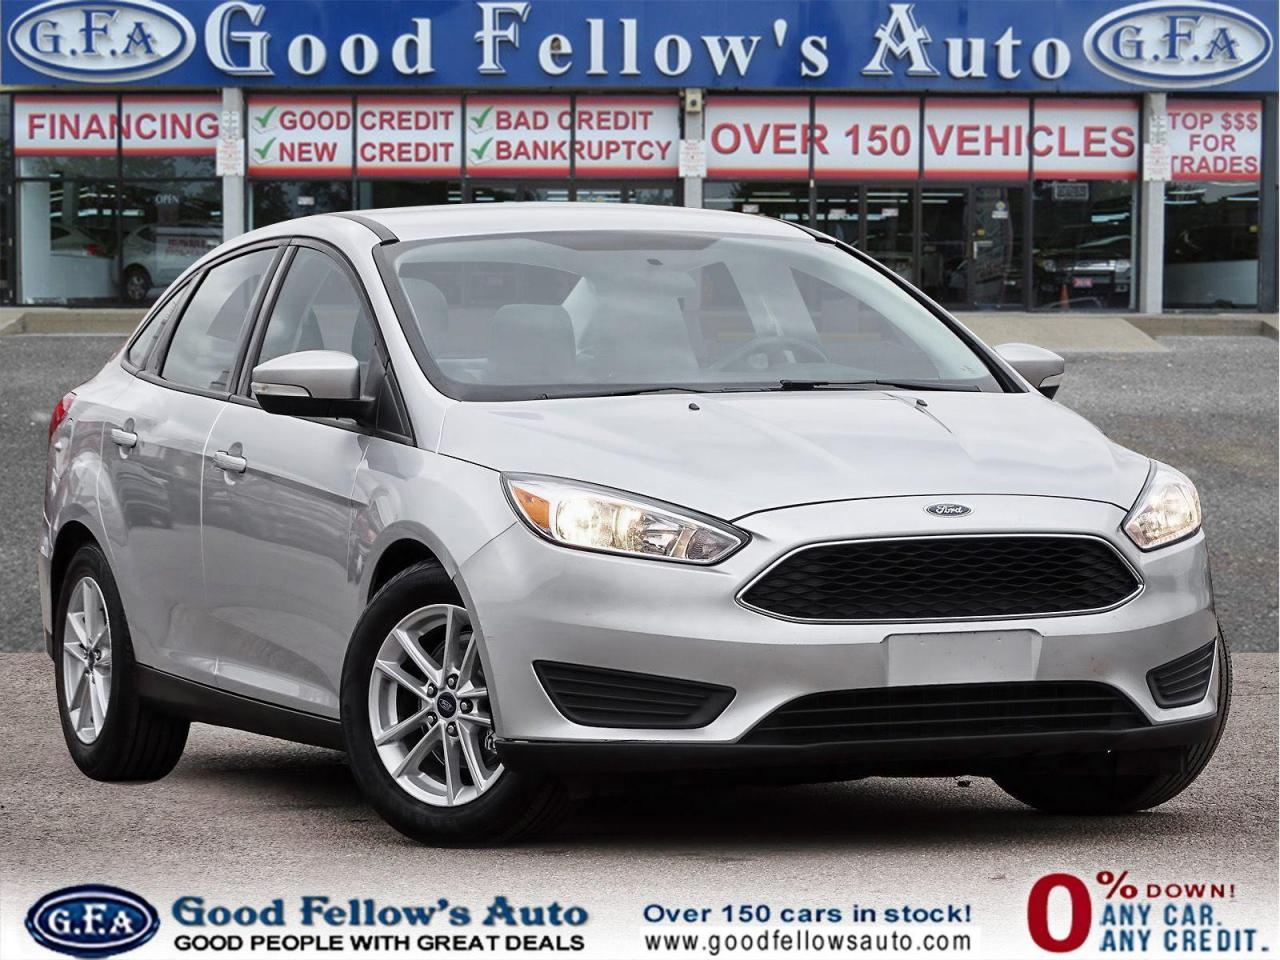 used 2016 Ford Focus car, priced at $9,400